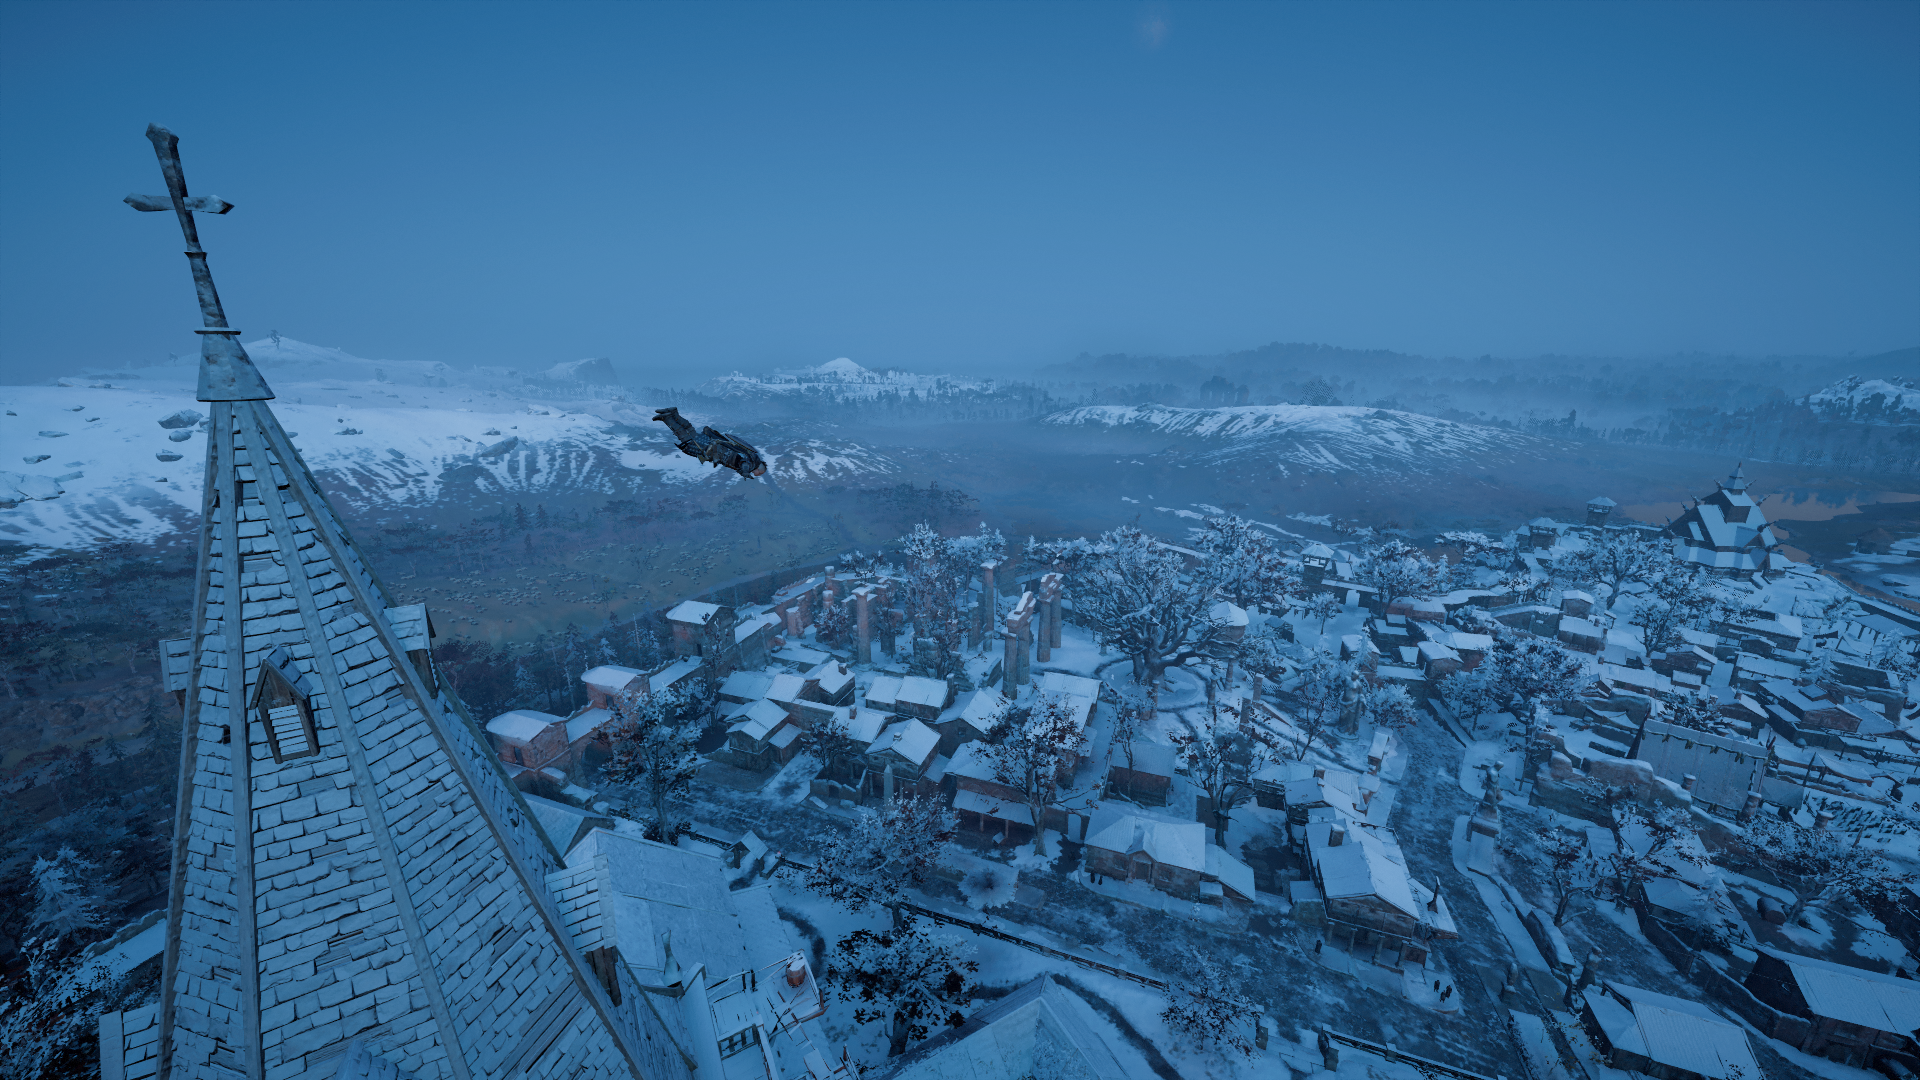 Assassin's Creed Valhalla guide: All Jorvik Wealth, Mysteries, and Artifacts